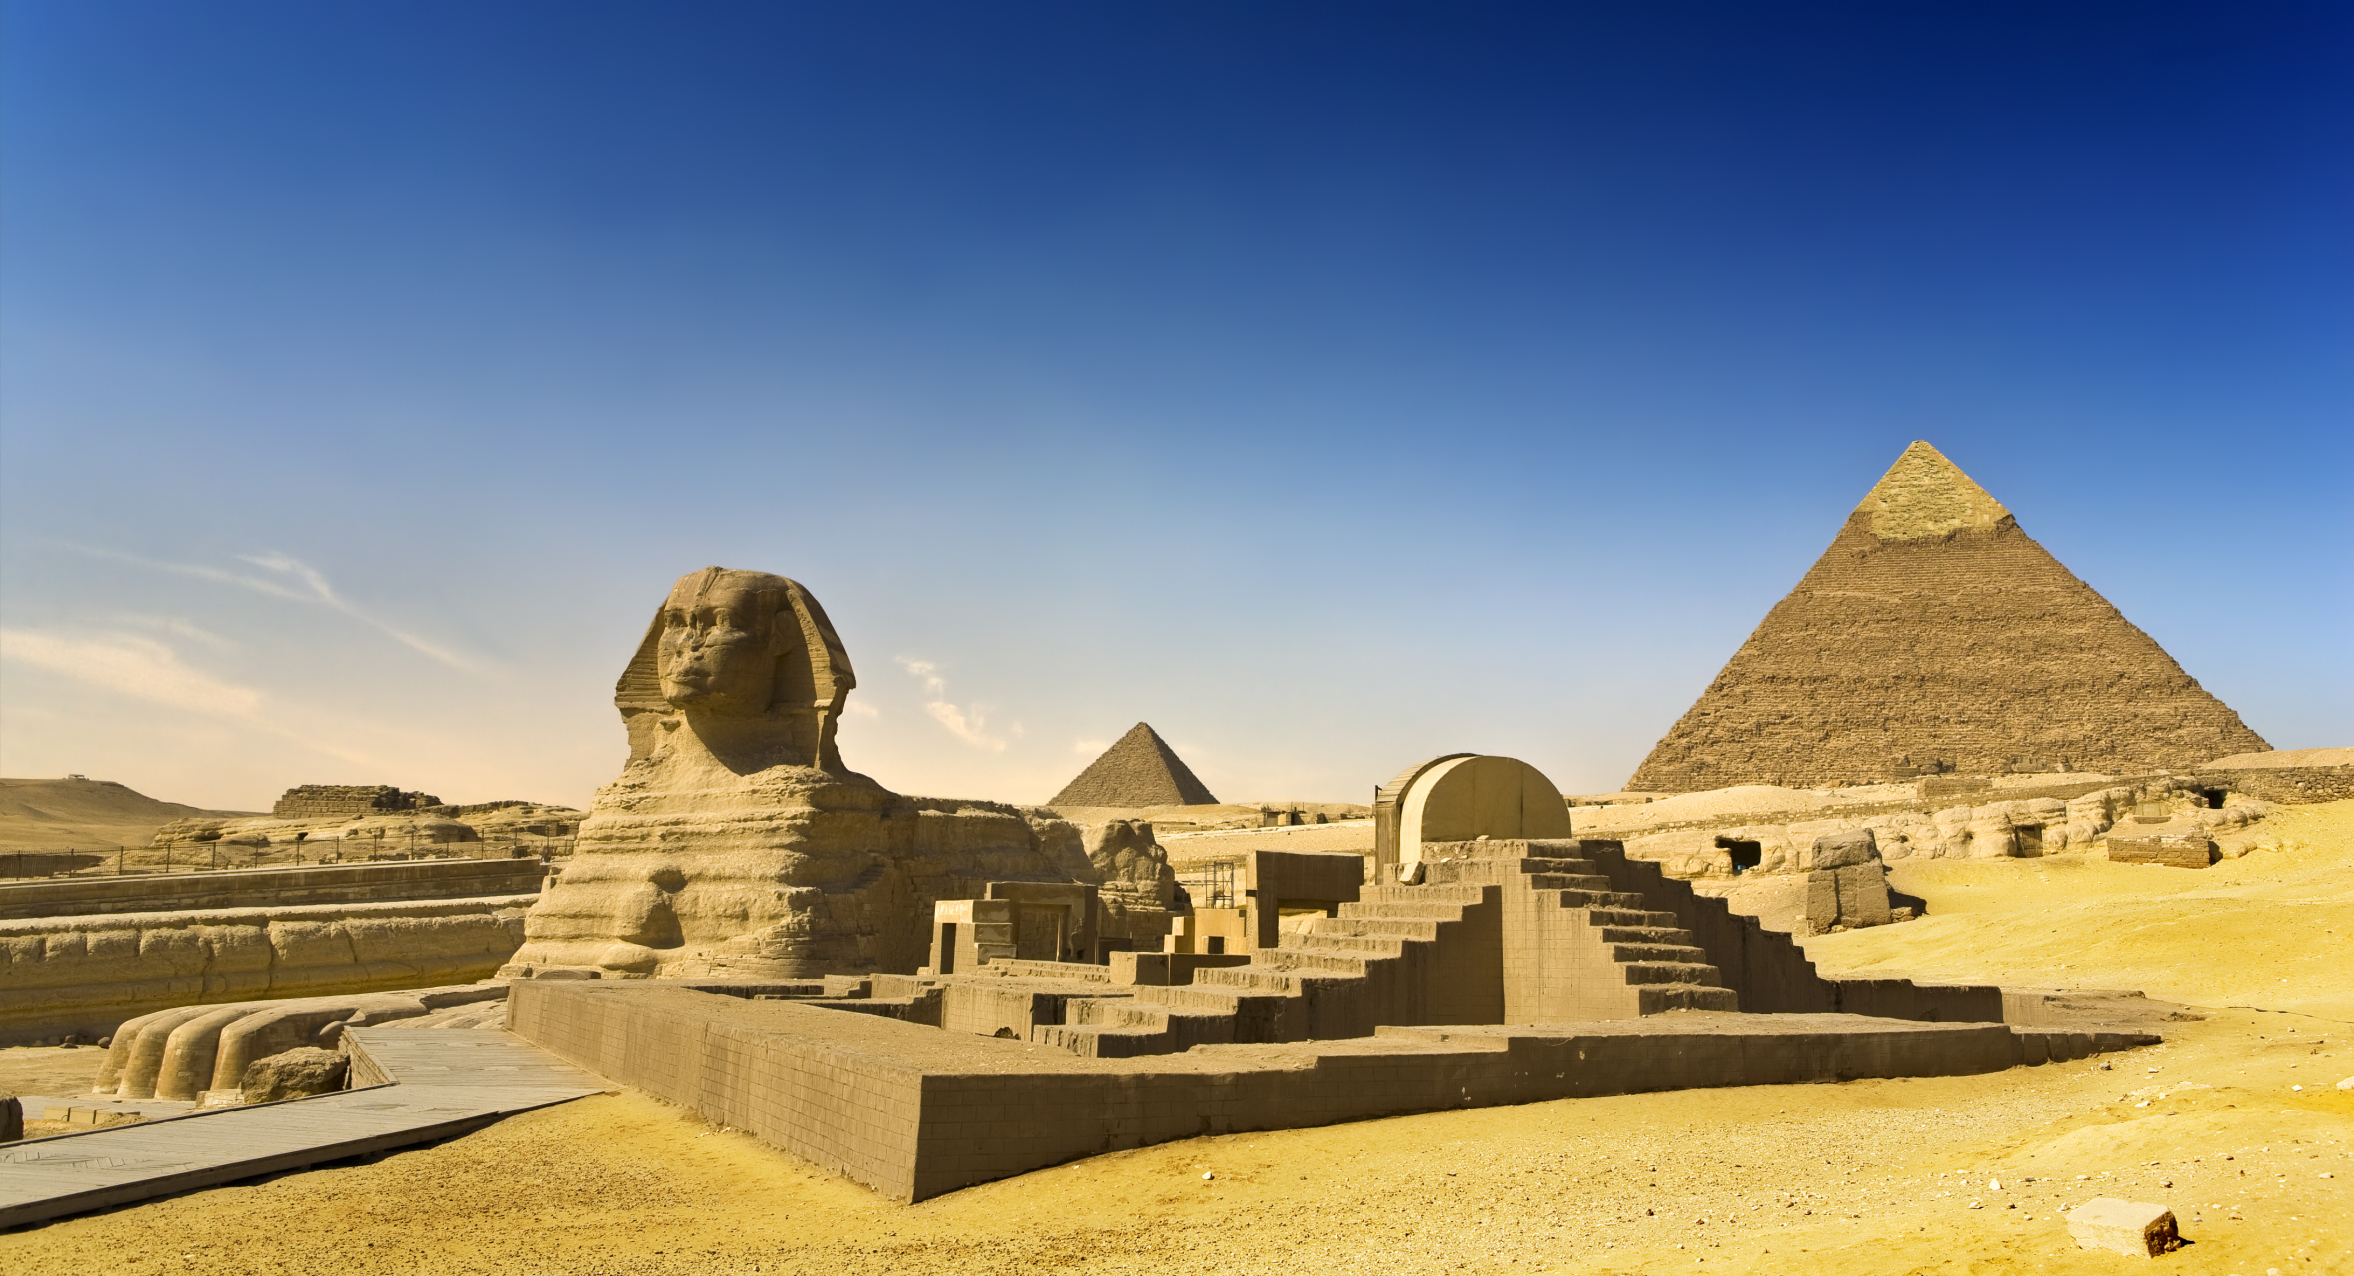 The Pyramids and The Great Sphinx